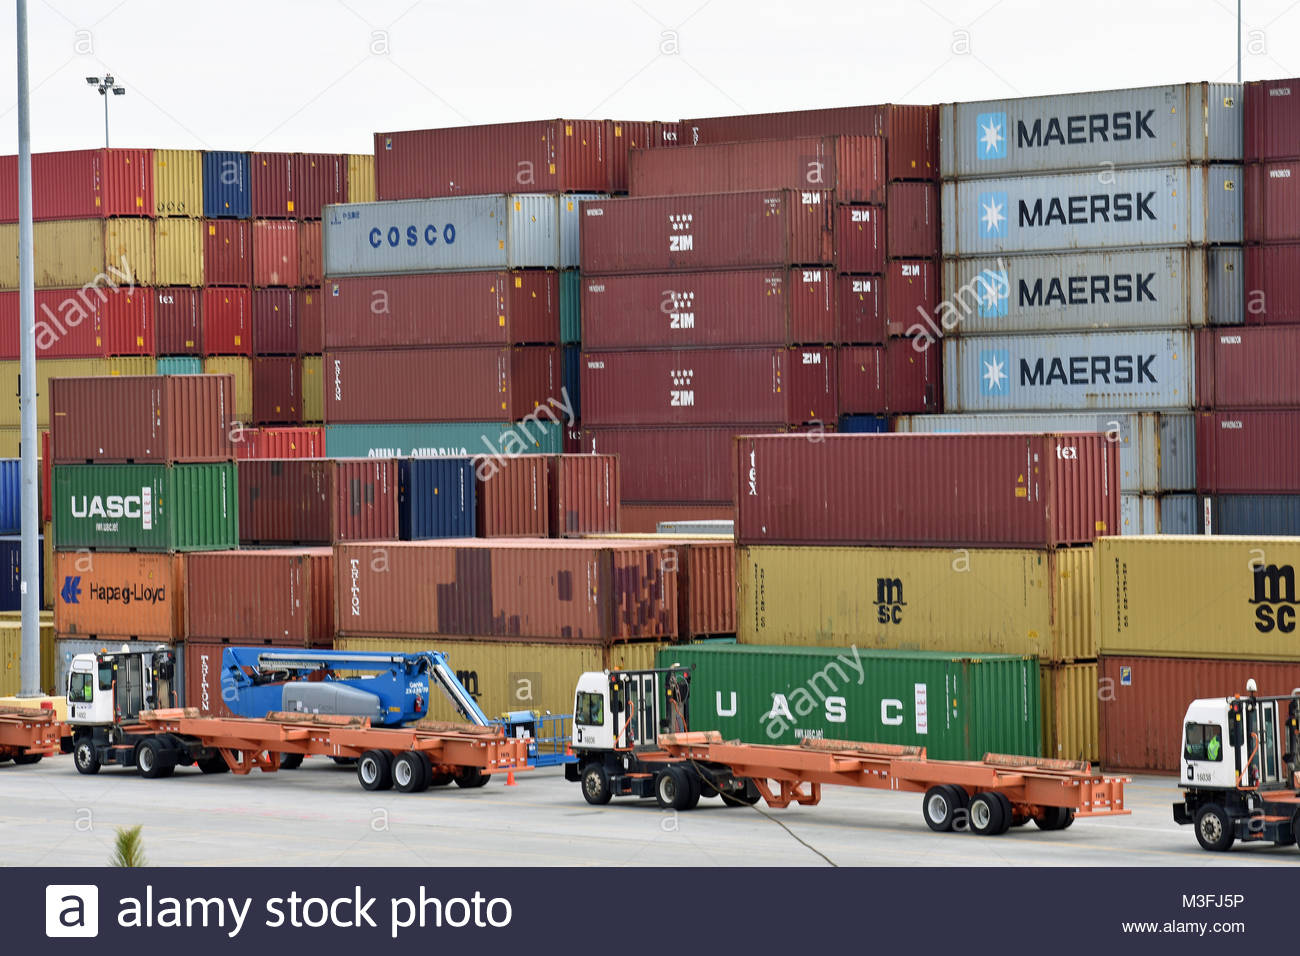 Inland Port greer (SC / USA) pictured with containers and yard trucks - Stock Image